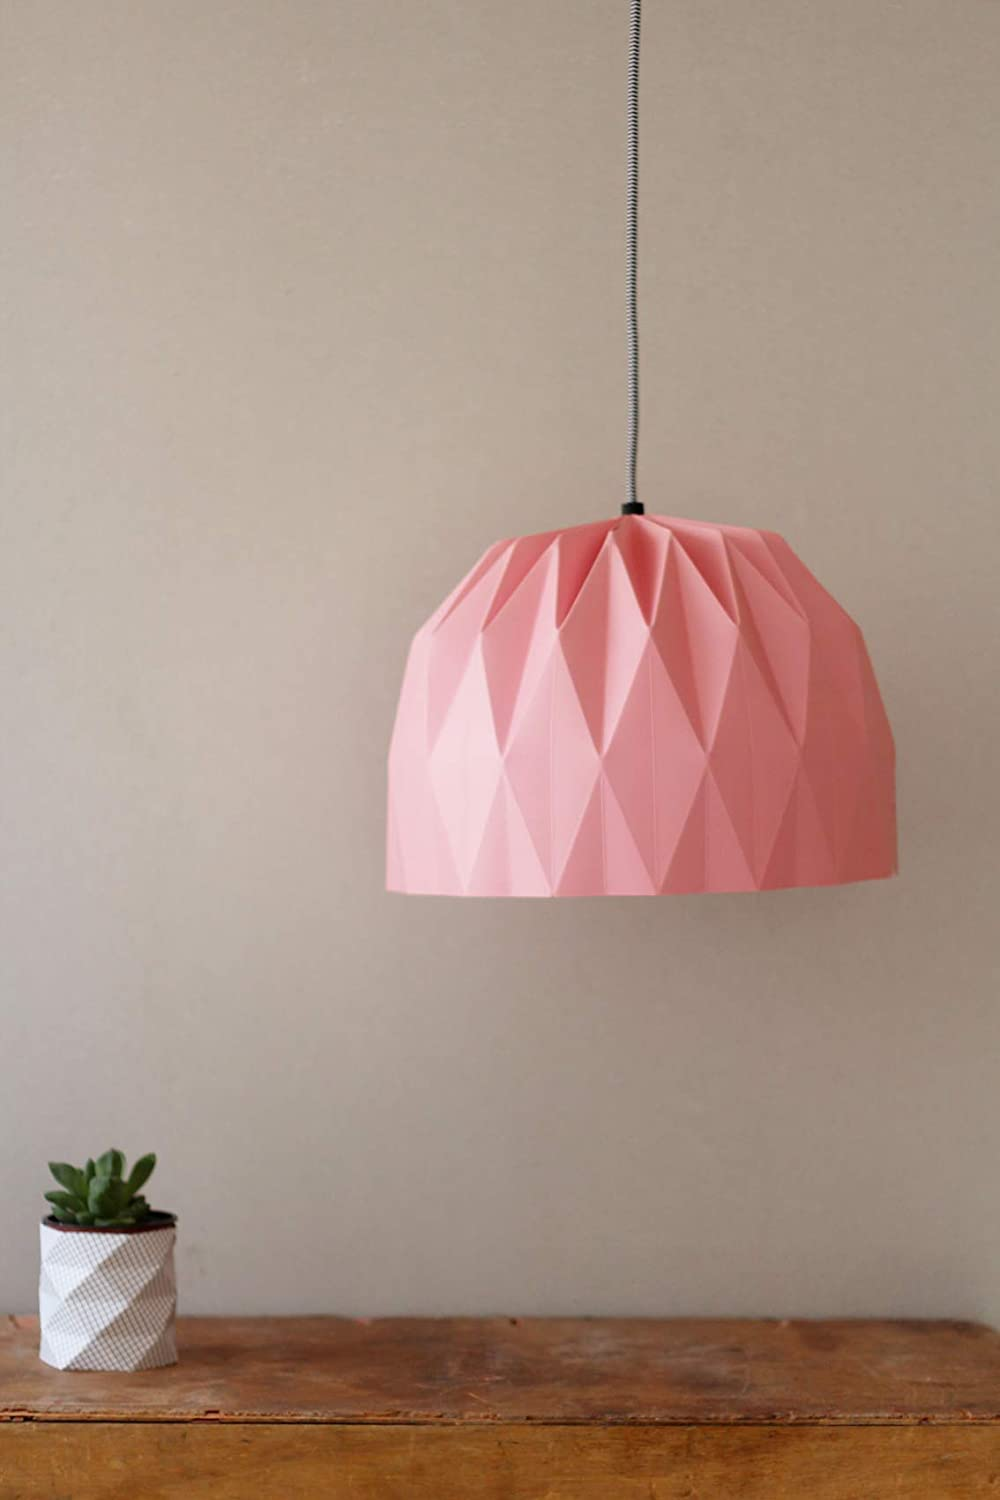 Tweelingen Modern Home Decor  - Unique Origami Pendant Light Folding Paper Lampshade with Socket and Black Cord (Pink)